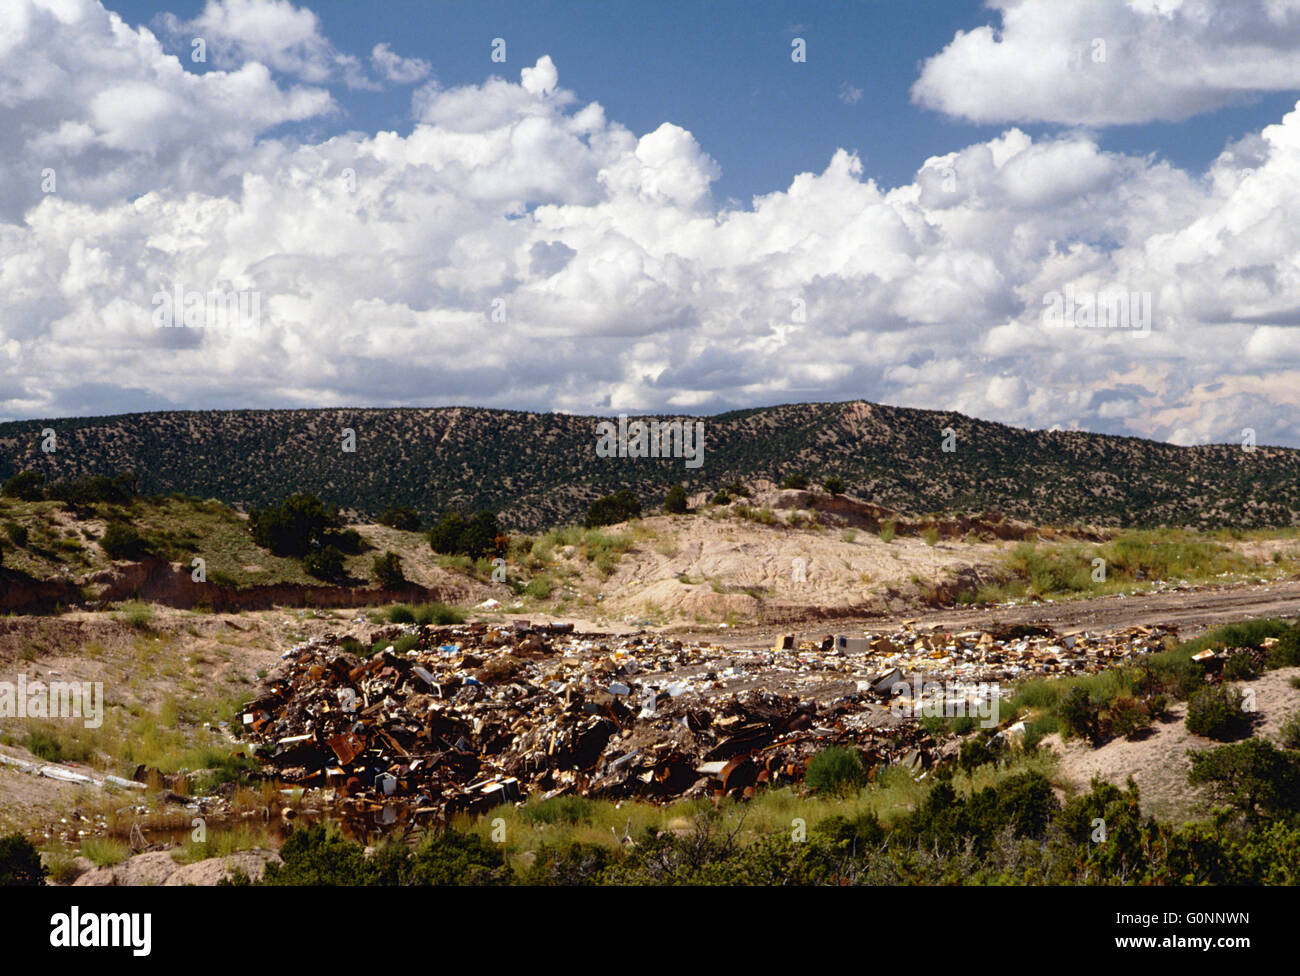 Landfill & town dump near Truchas; New Mexico; USA Stock Photo